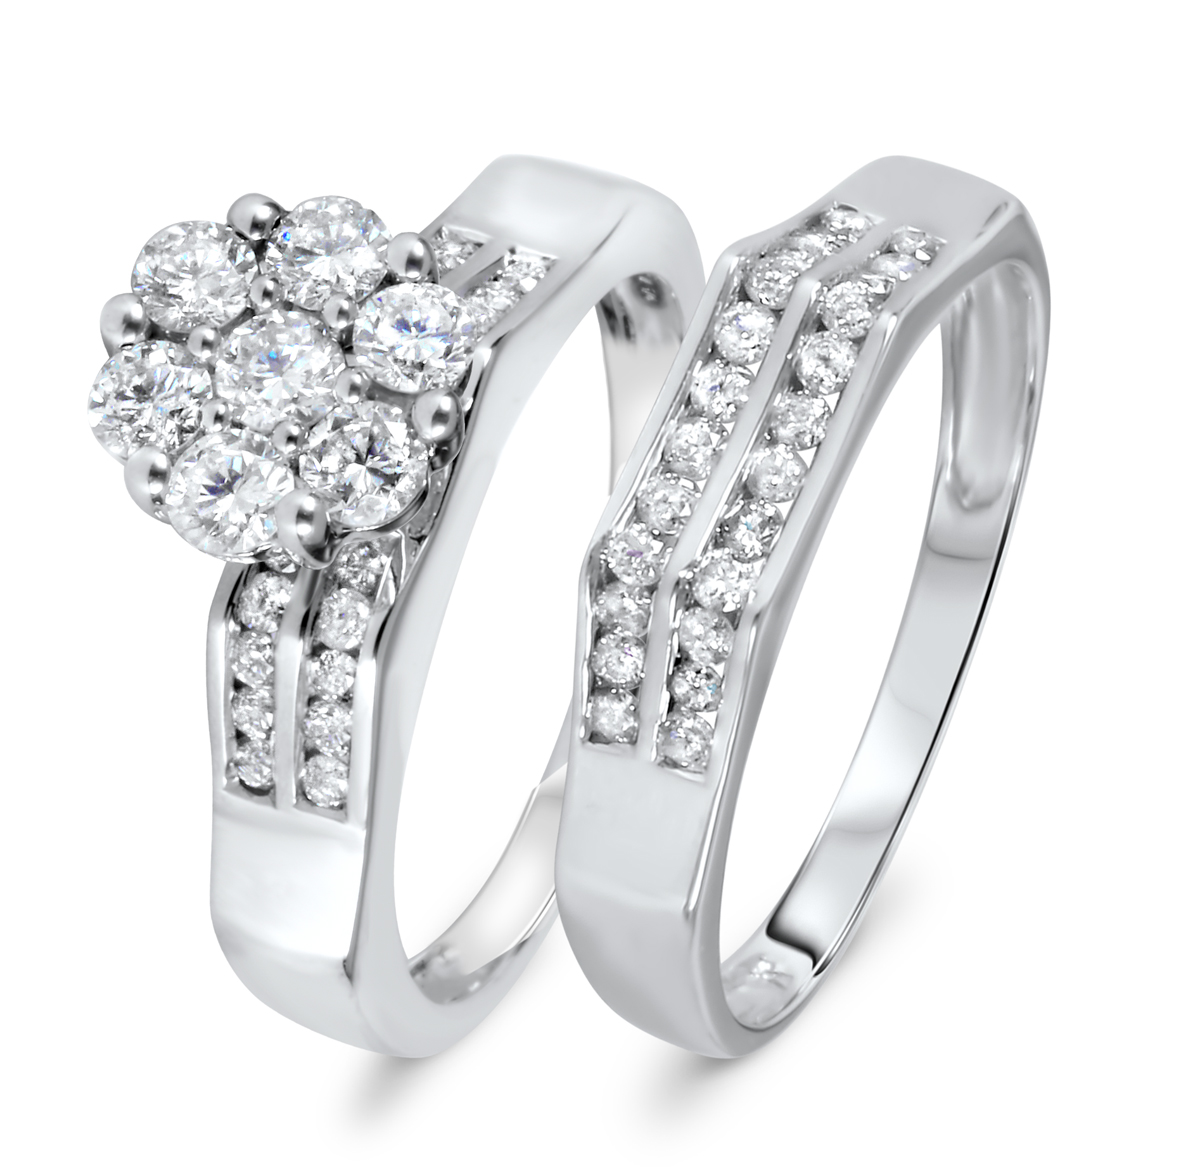 1 1/8 CT. T.W. Diamond Women's Bridal Wedding Ring Set 10K White Gold